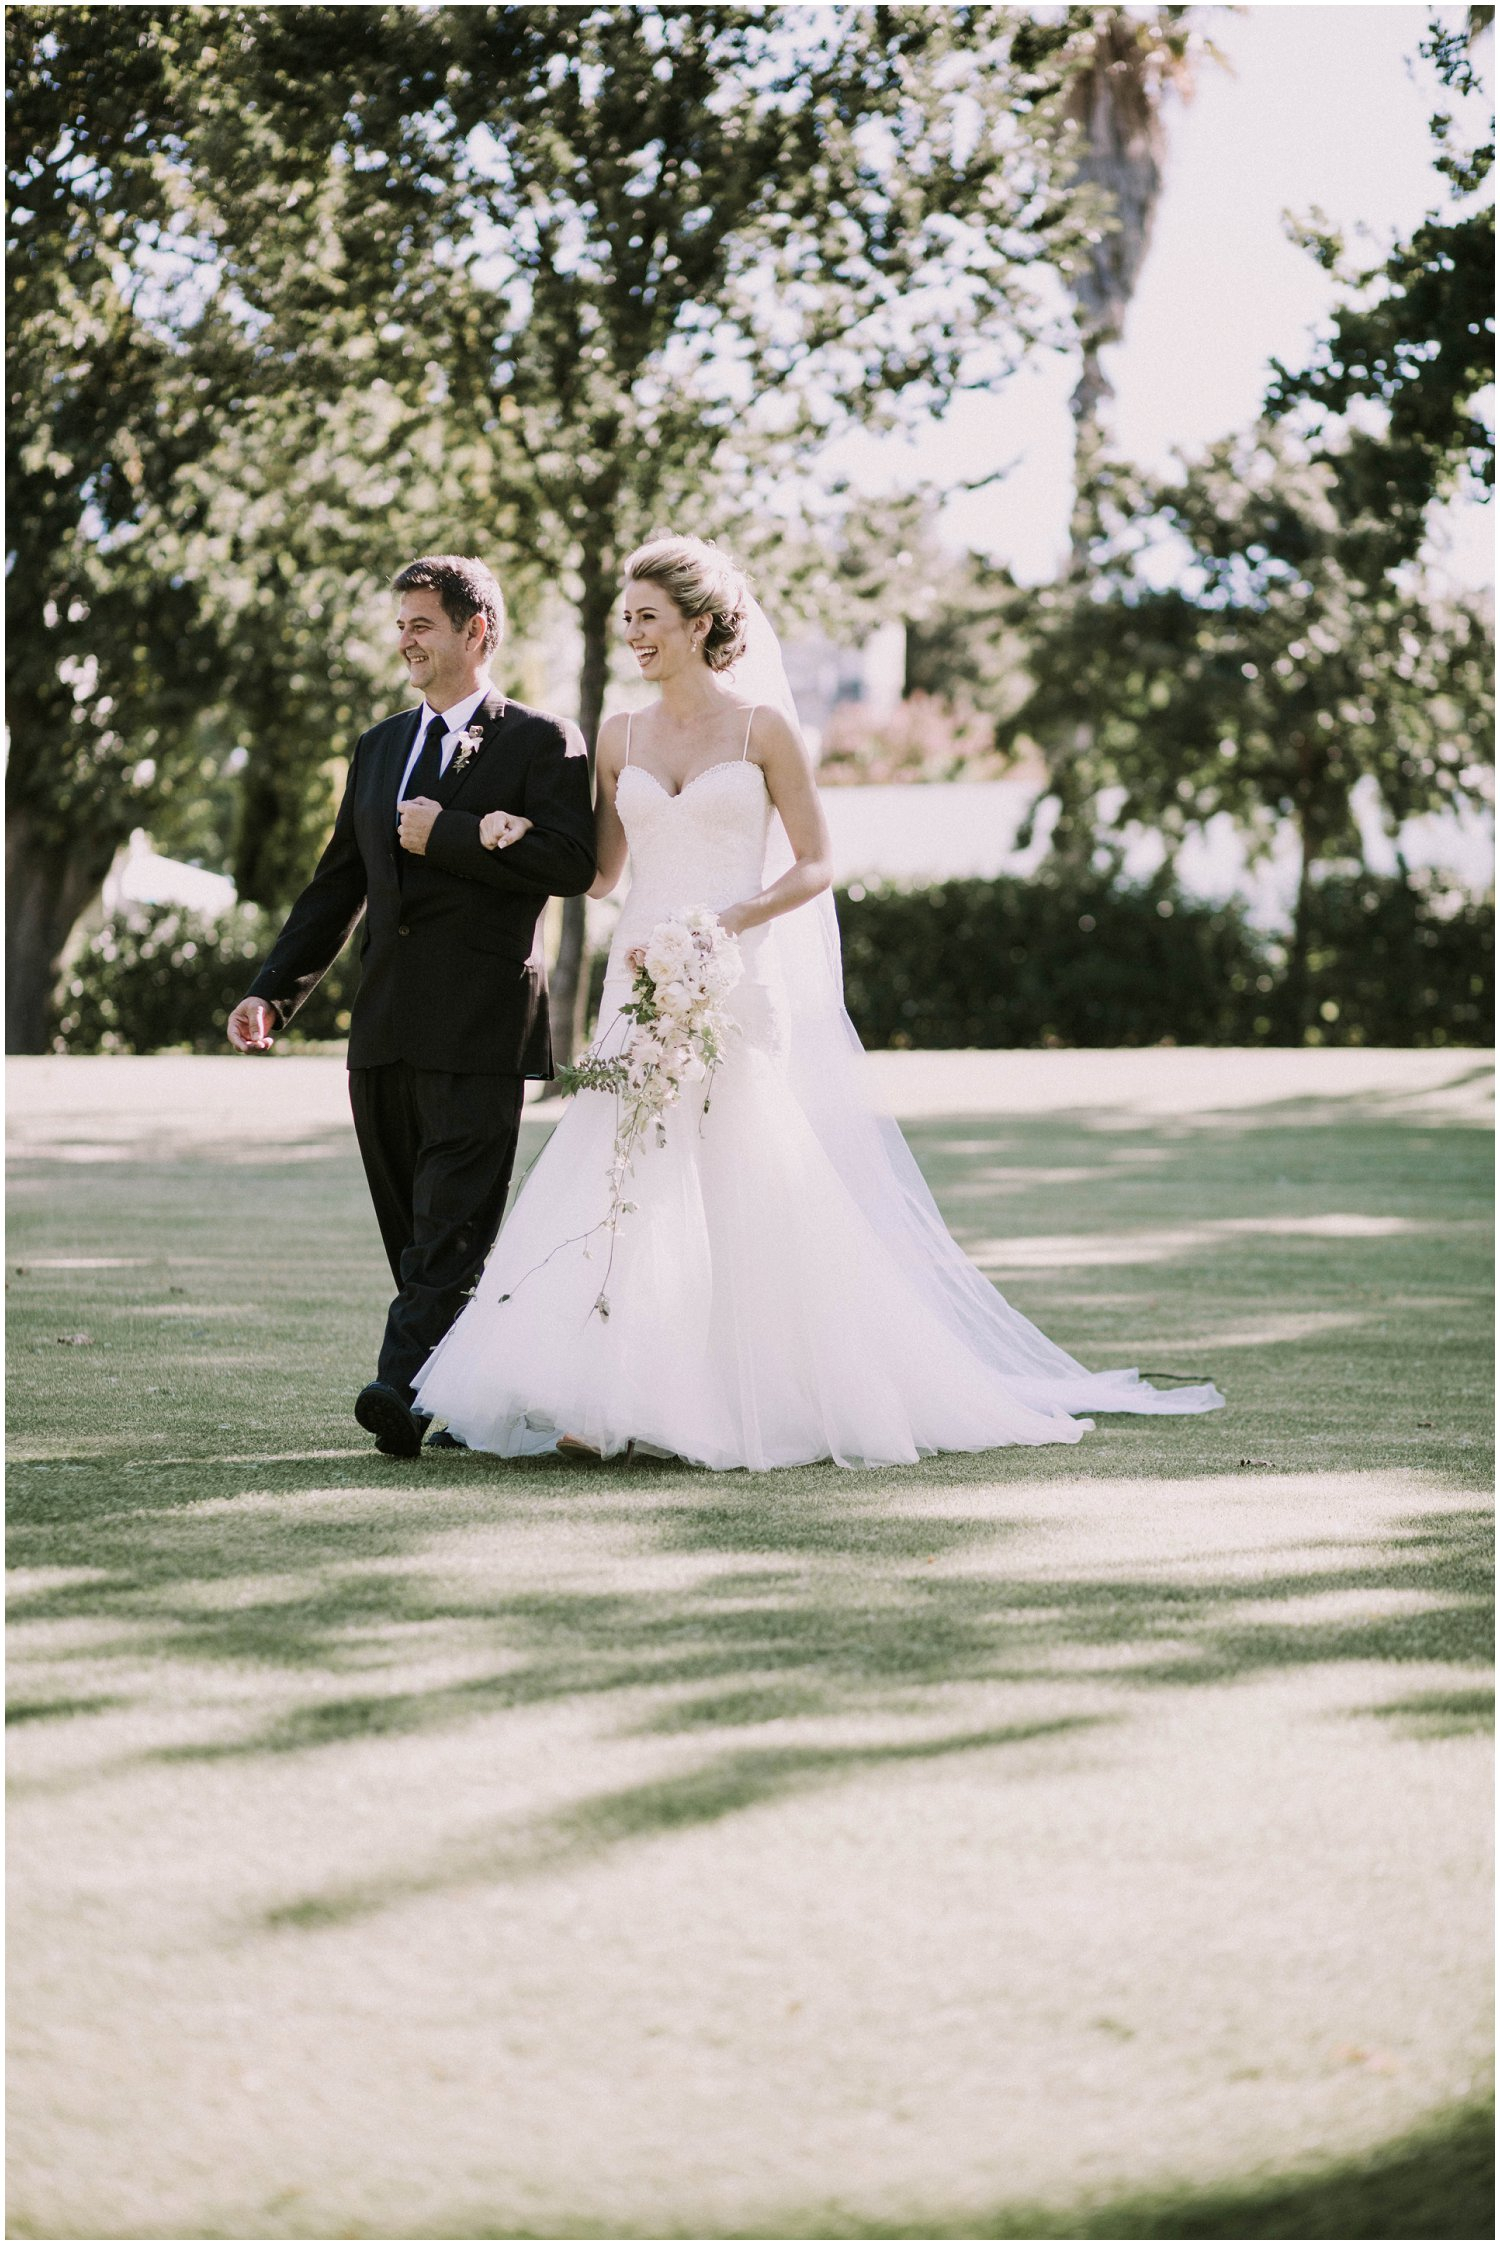 Top Artistic Documentary Wedding Photographer Cape Town South Africa Rue Kruger_0096.jpg